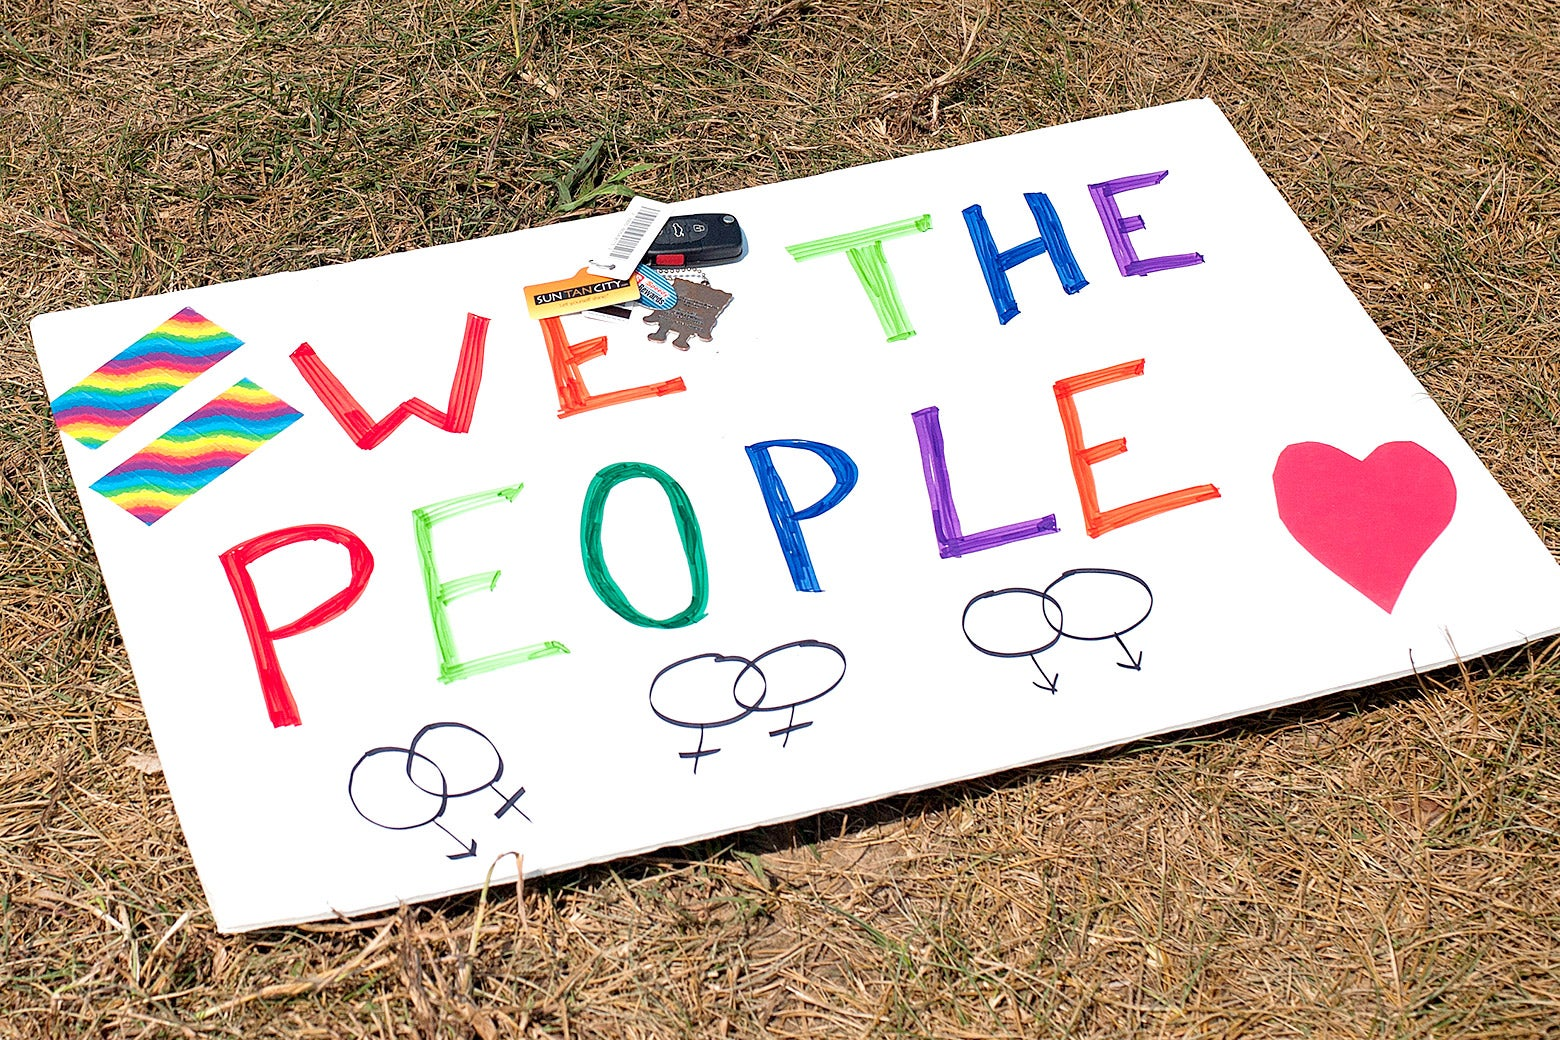 """A sign supporting same-sex marriage (""""We the People"""" with rainbow-colored lettering, a heart, and intertwined female symbols) lies on the ground in front of the Rowan County Courthouse on Sep. 2, 2015, in Morehead, Kentucky."""